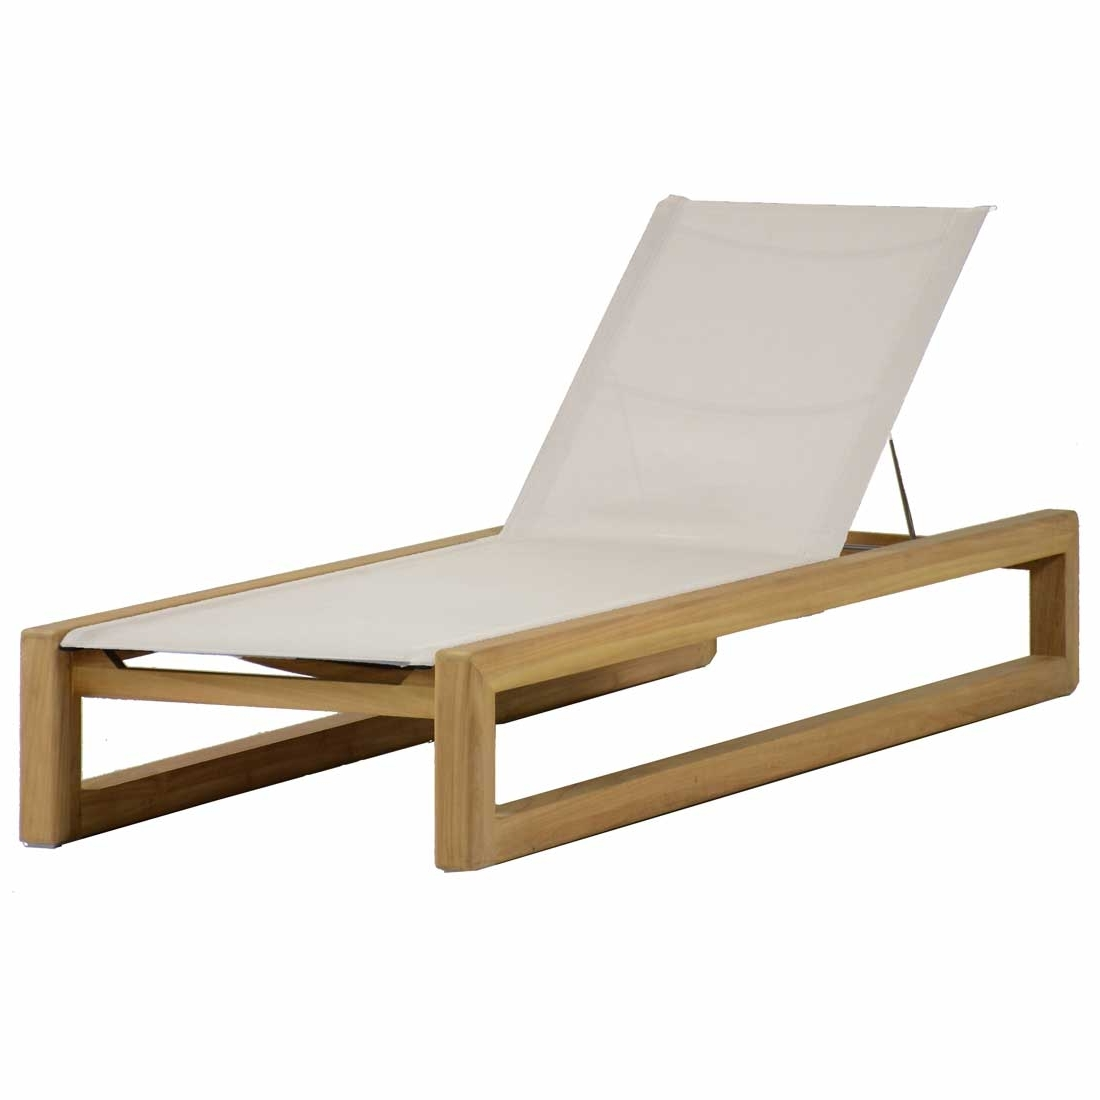 Bali Teak Chaise Lounge – Summer Classics In Popular Teak Chaise Lounges (View 9 of 15)